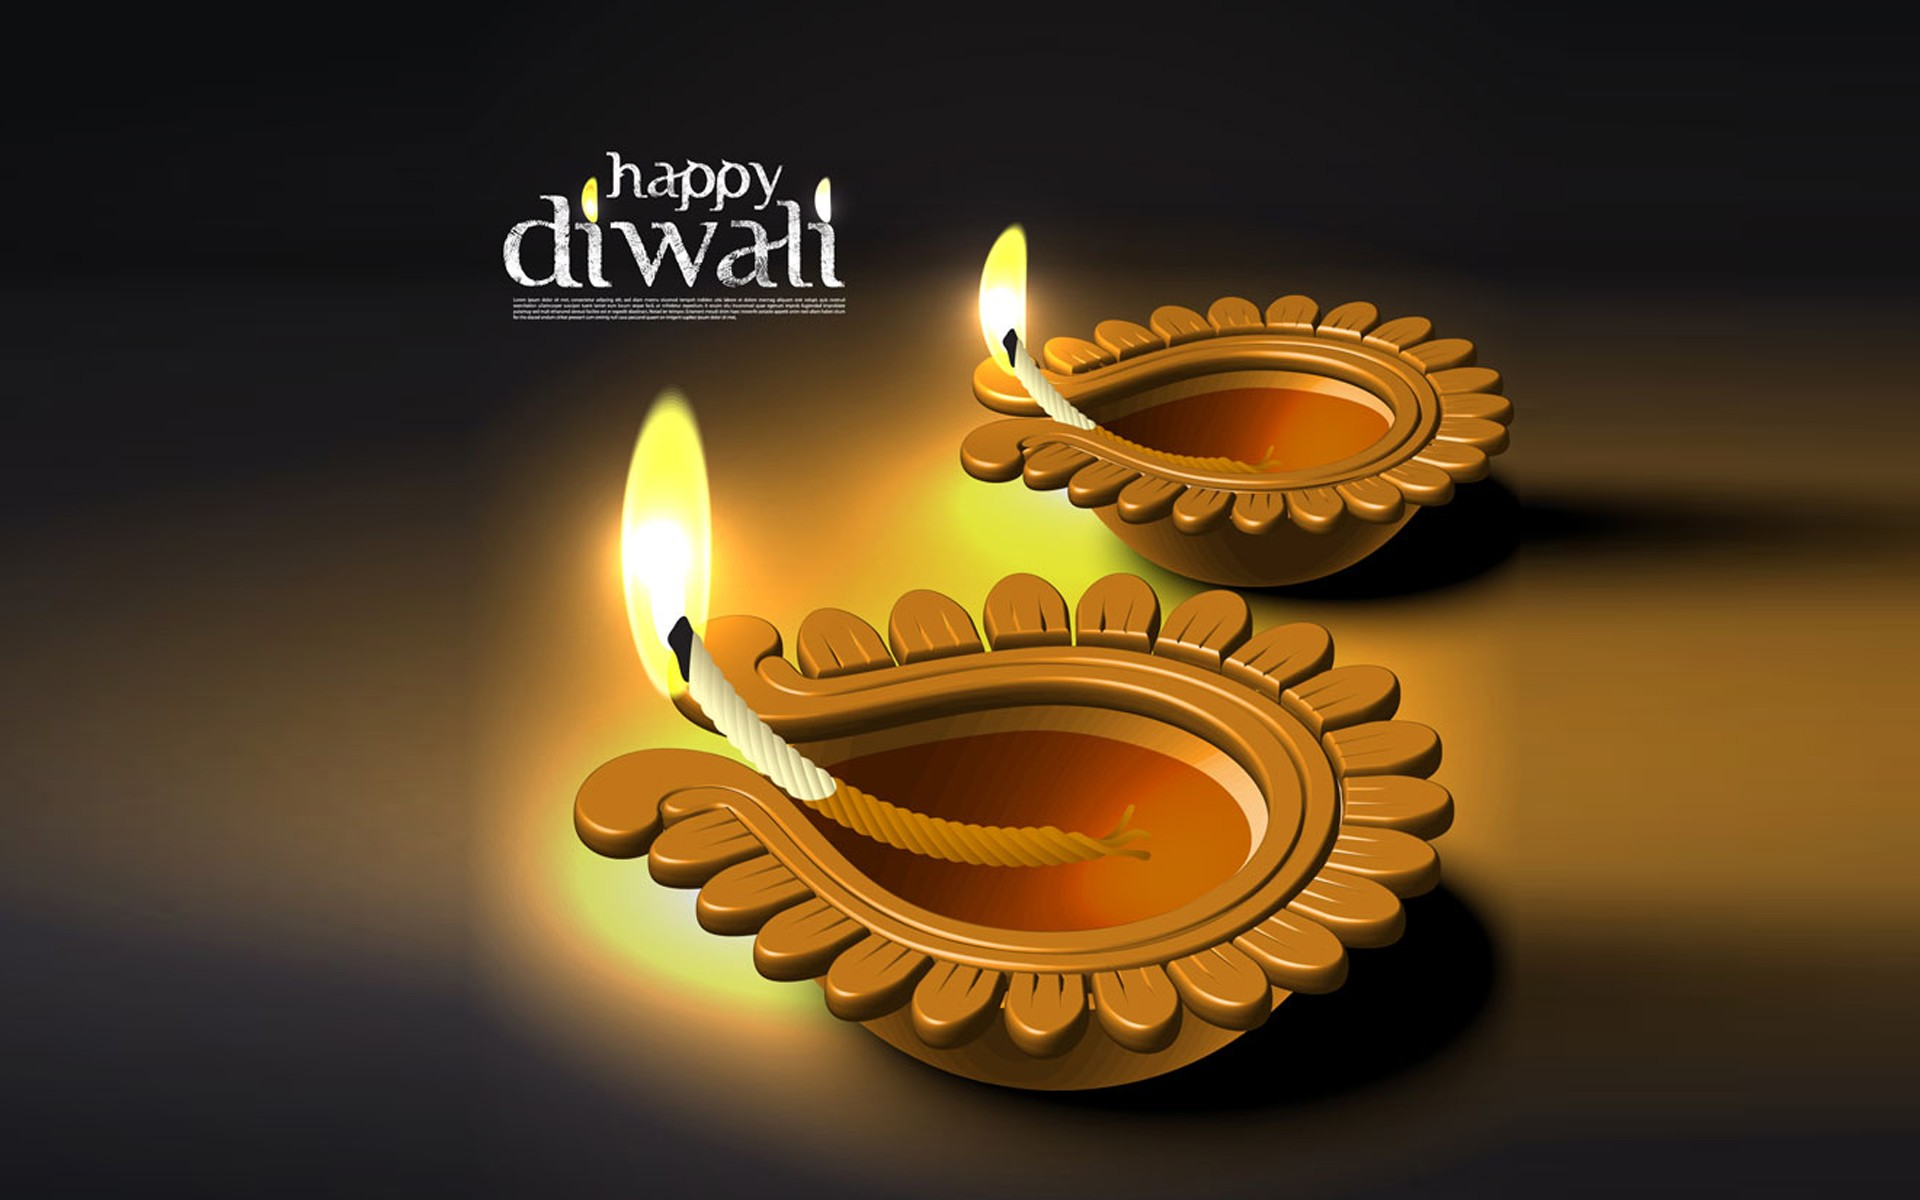 Cute Live Wallpaper For Android Mobile Download Diwali Festival Wallpaper Image Gallery